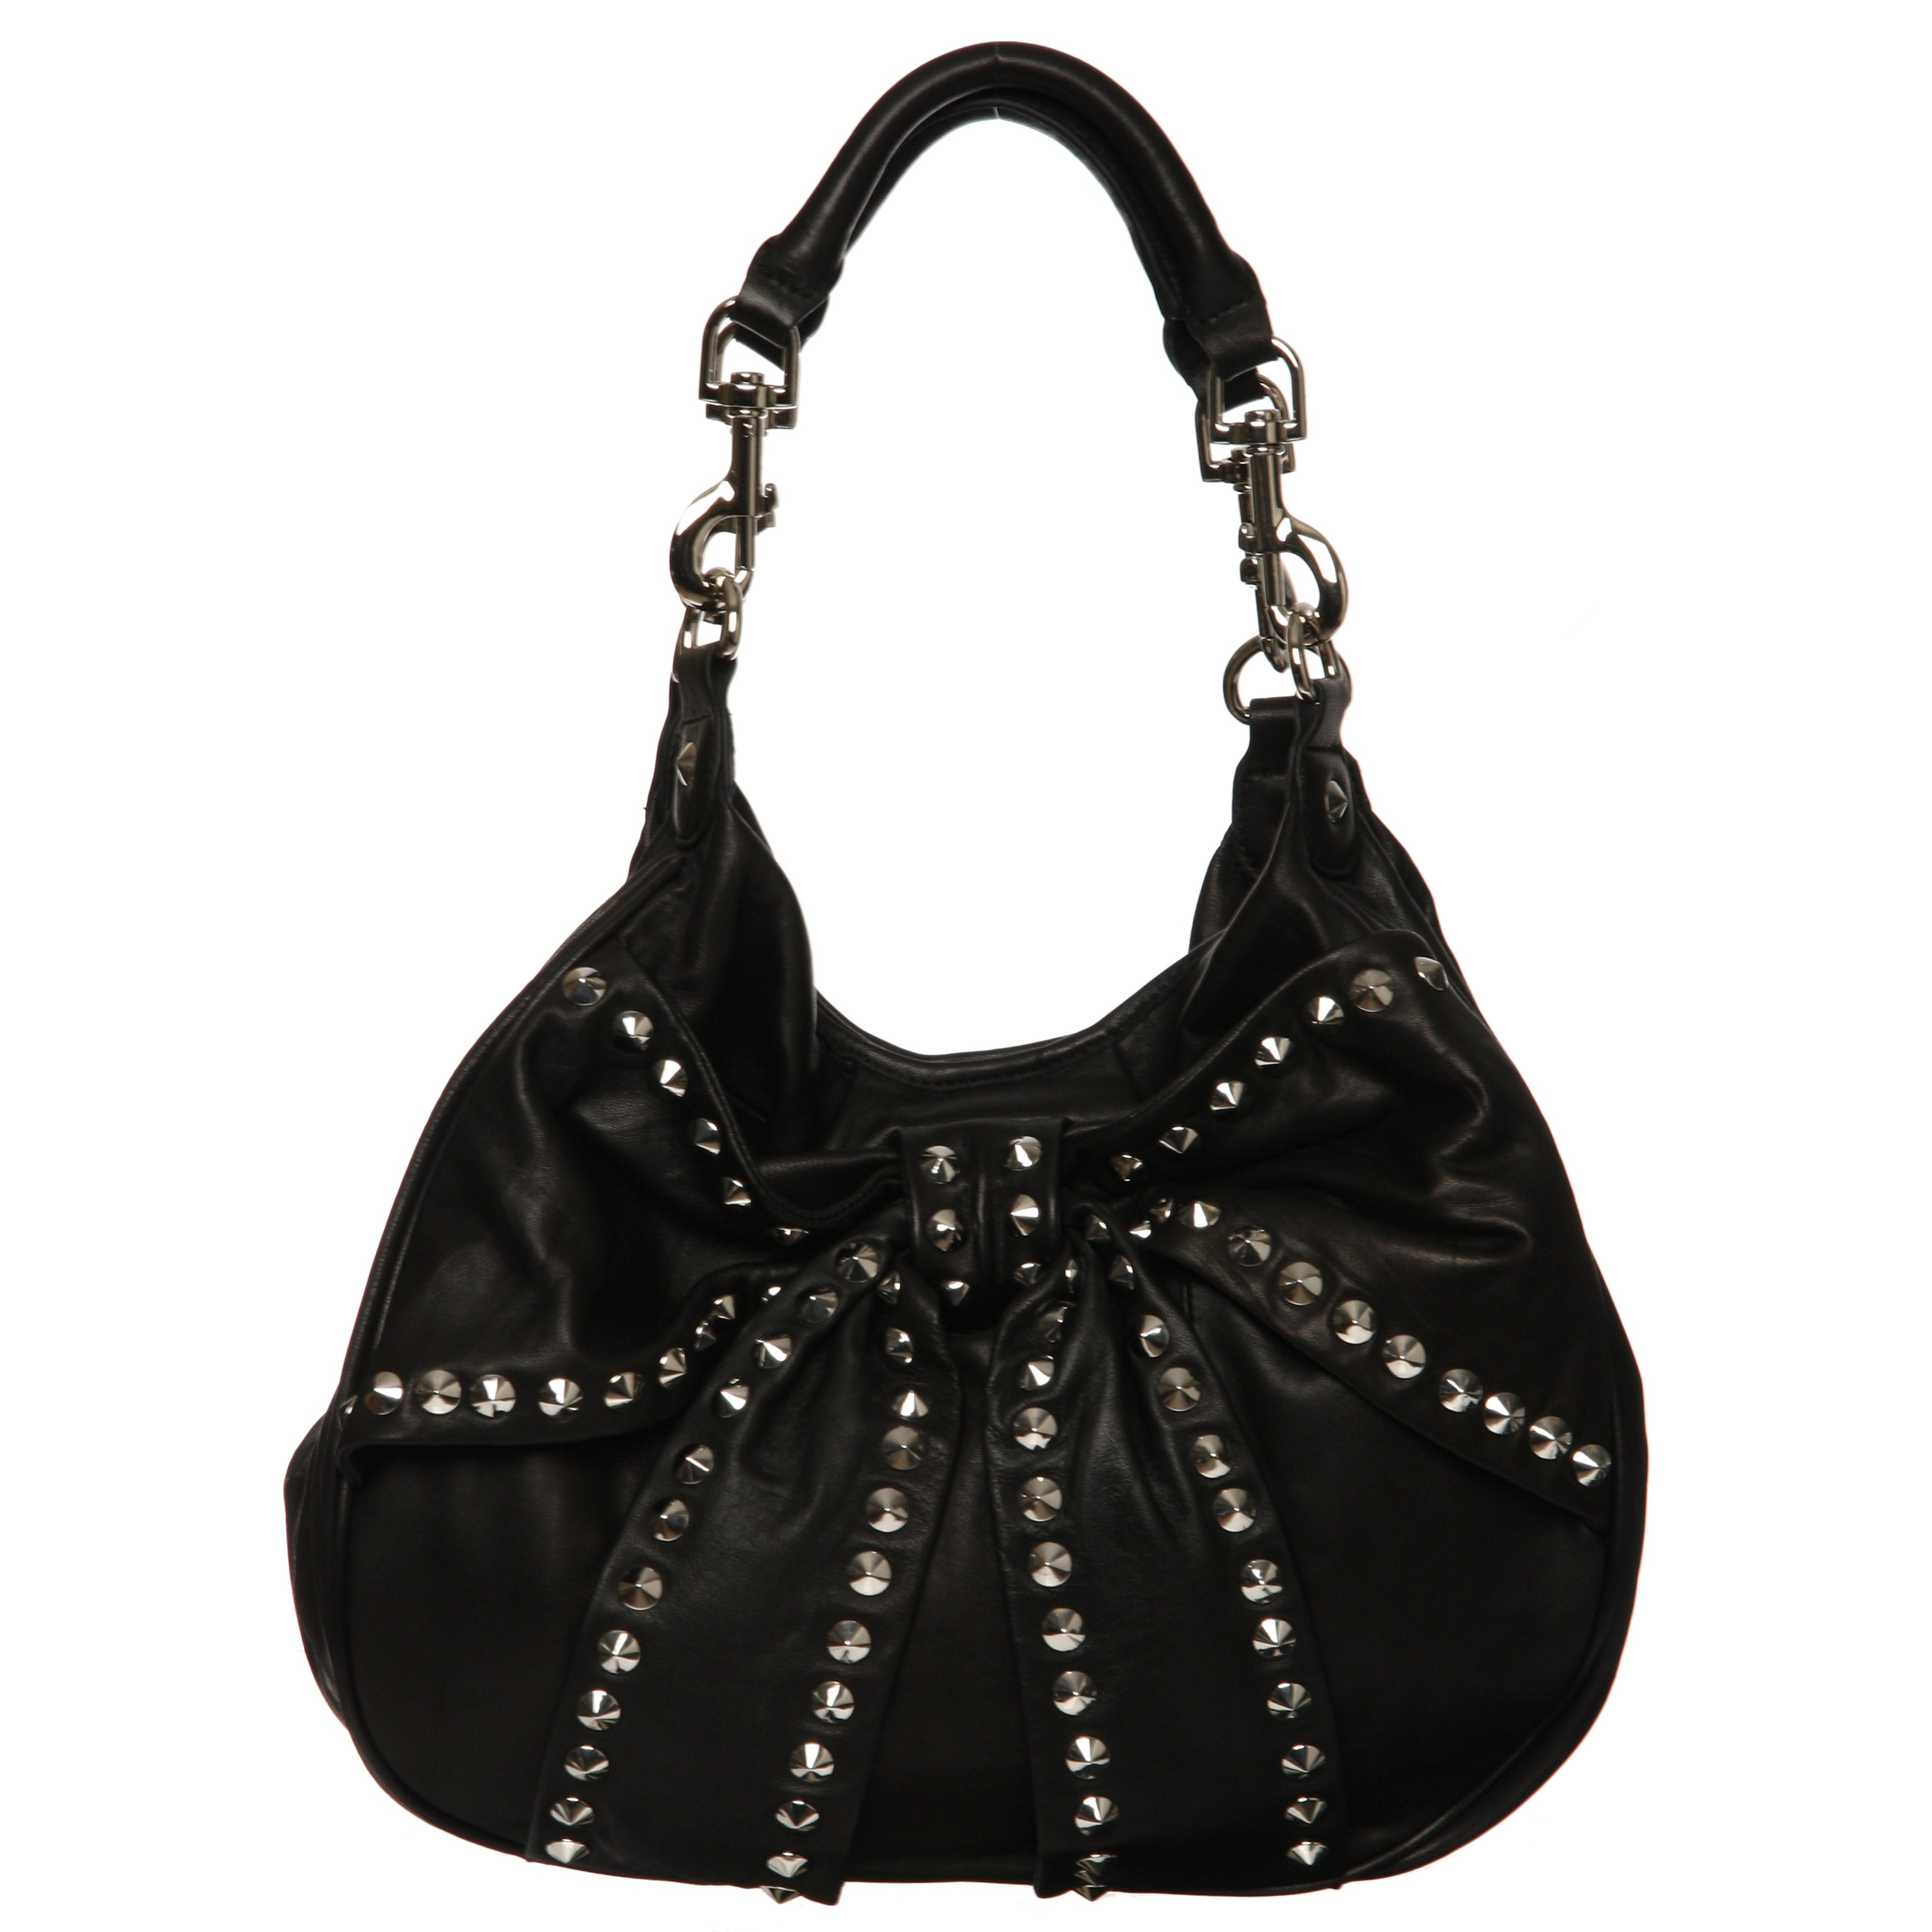 Betsey Johnson Studded Bow Leather Tote Bag